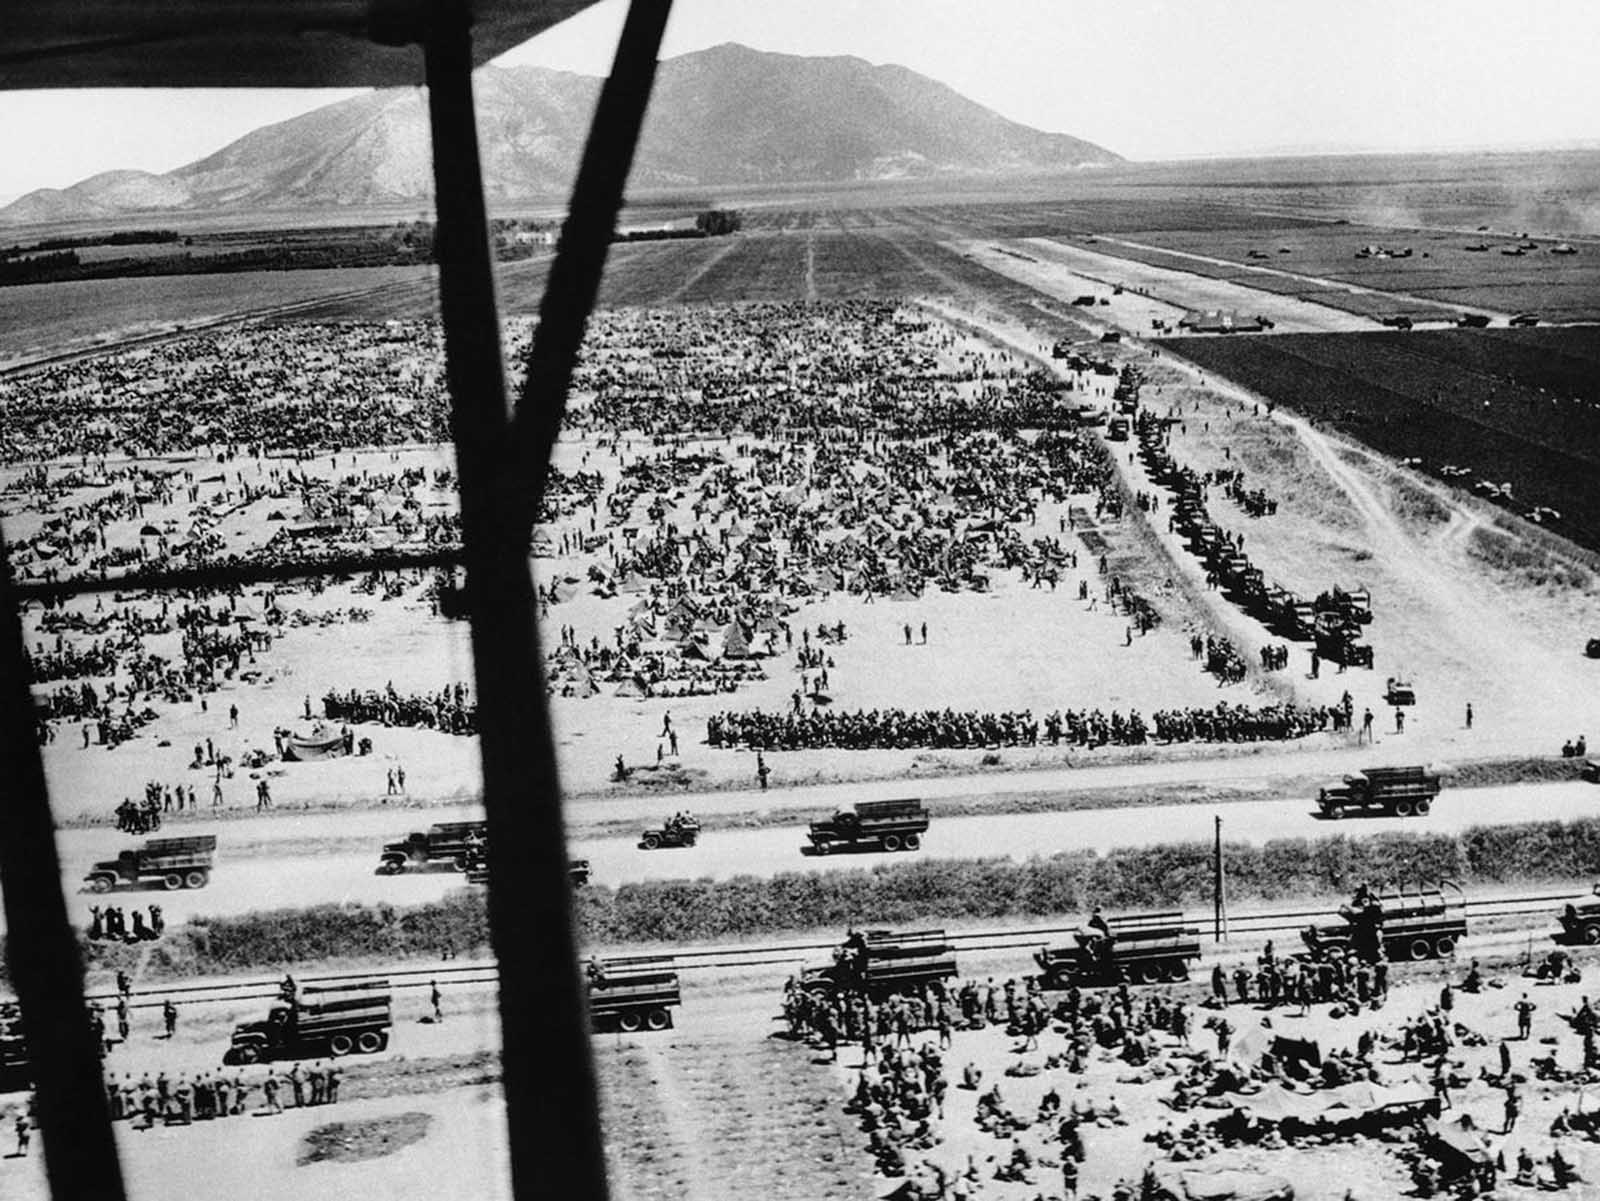 After the surrender of Axis forces in Tunisia in May of 1943, Allied forces took more than 275,000 prisoners of war. Shown here is one roundup of thousands of German and Italian soldiers in Tunisia seen in an Army Air Forces aerial shot, on June 11, 1943.